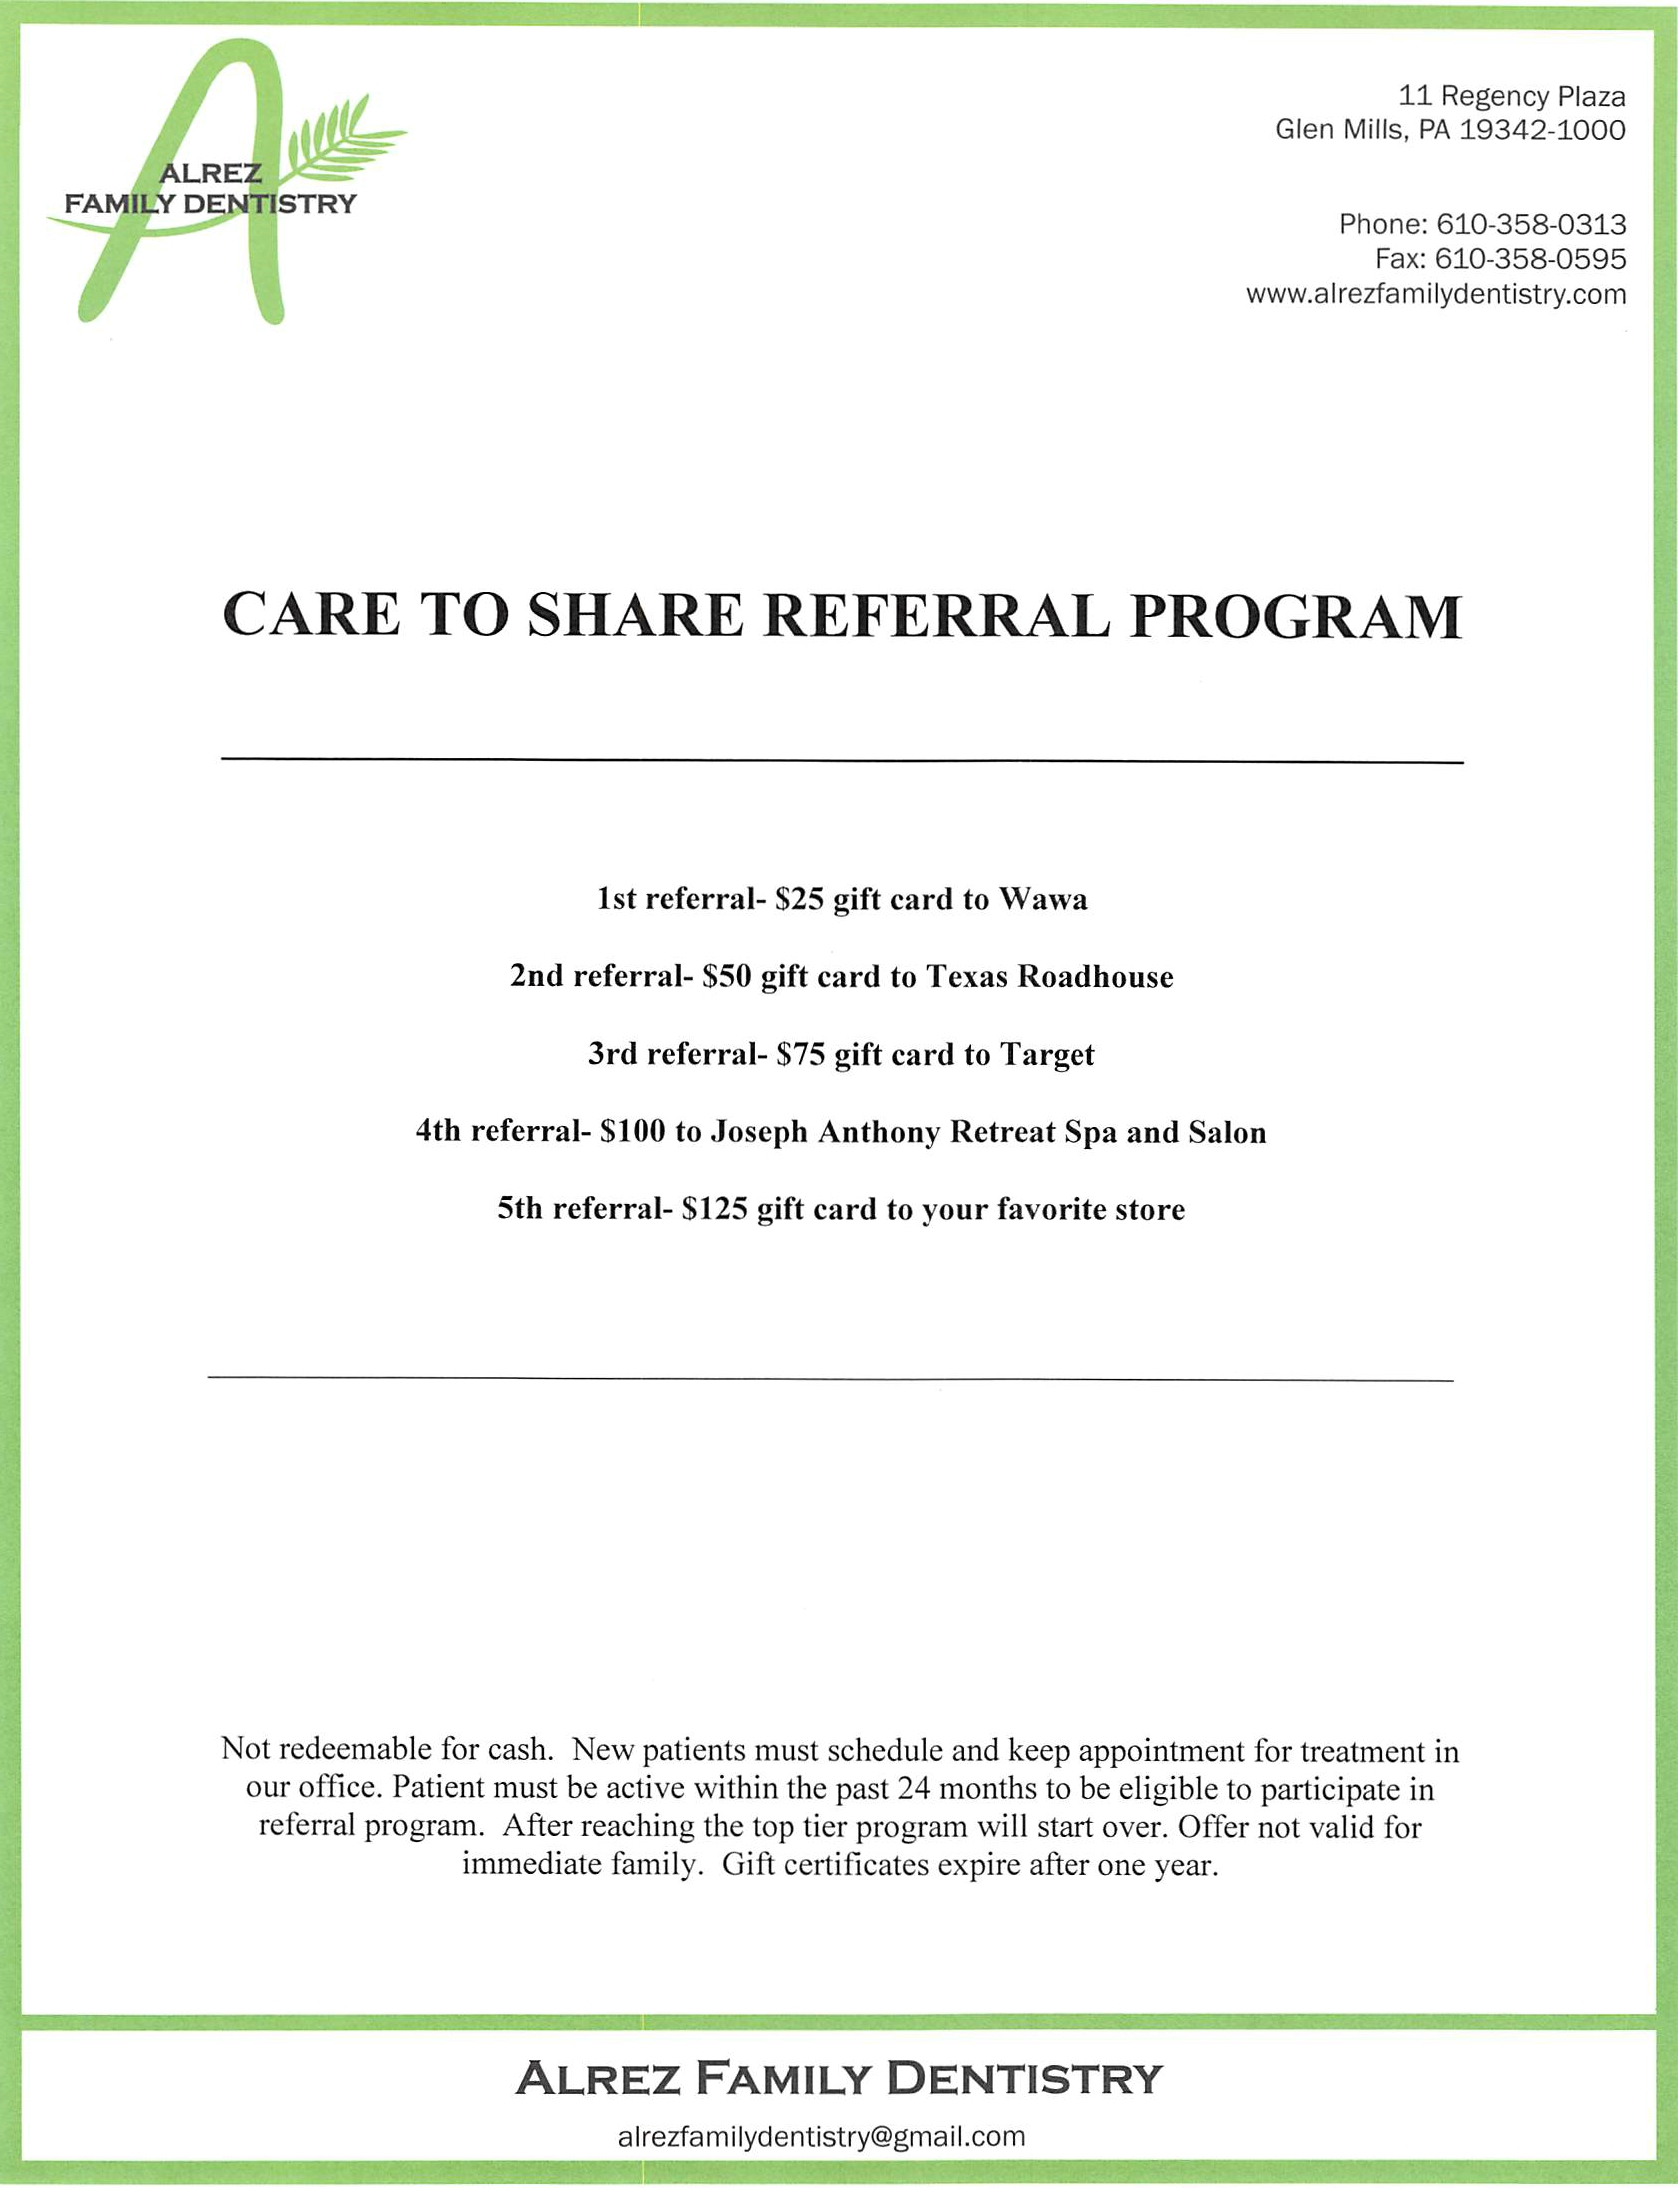 care to share Alrez Family Dentistry Referral program